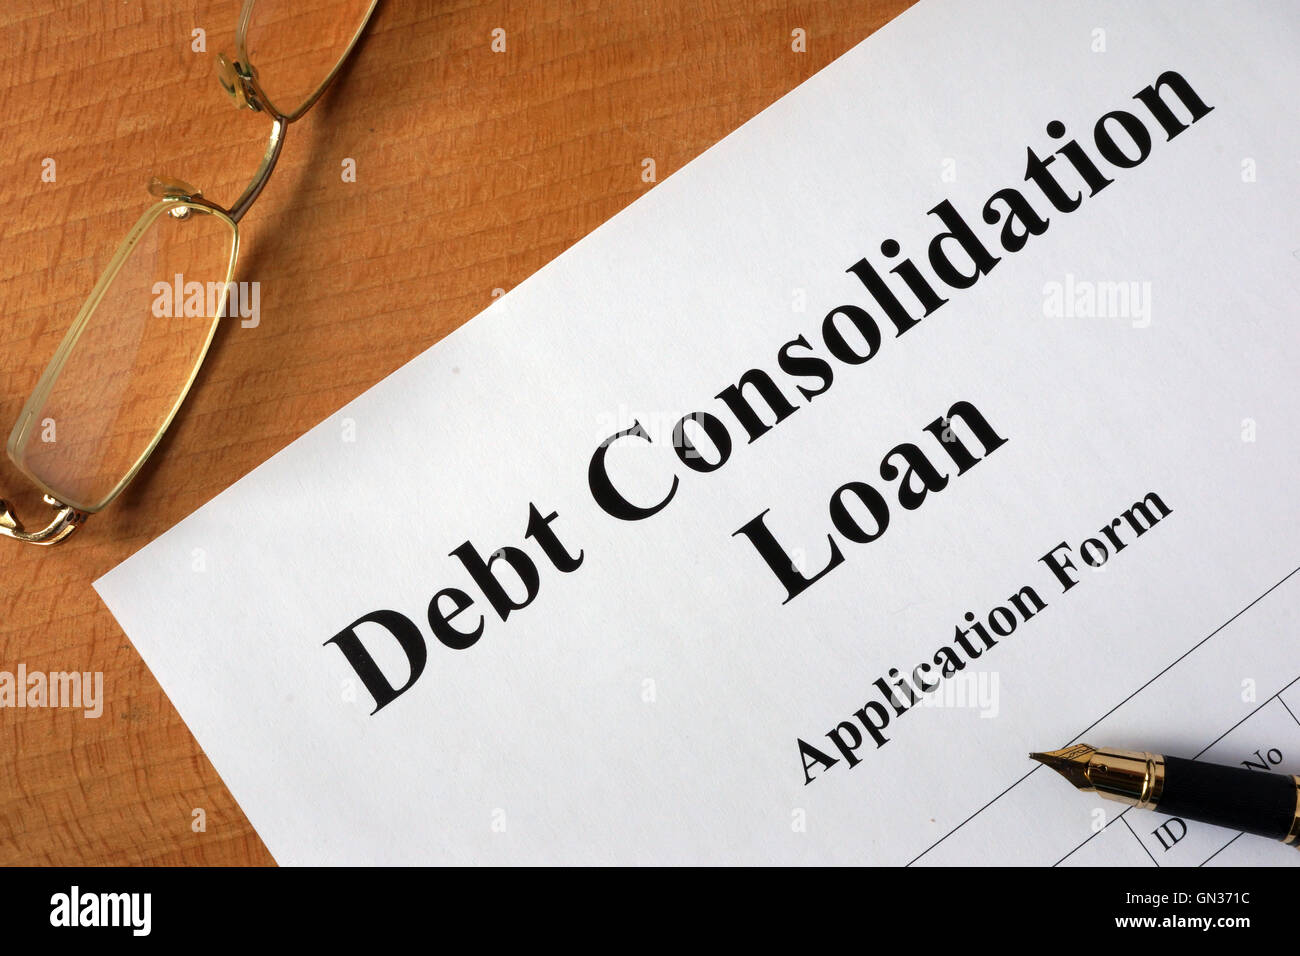 Debt consolidation loan form on a wooden table. - Stock Image